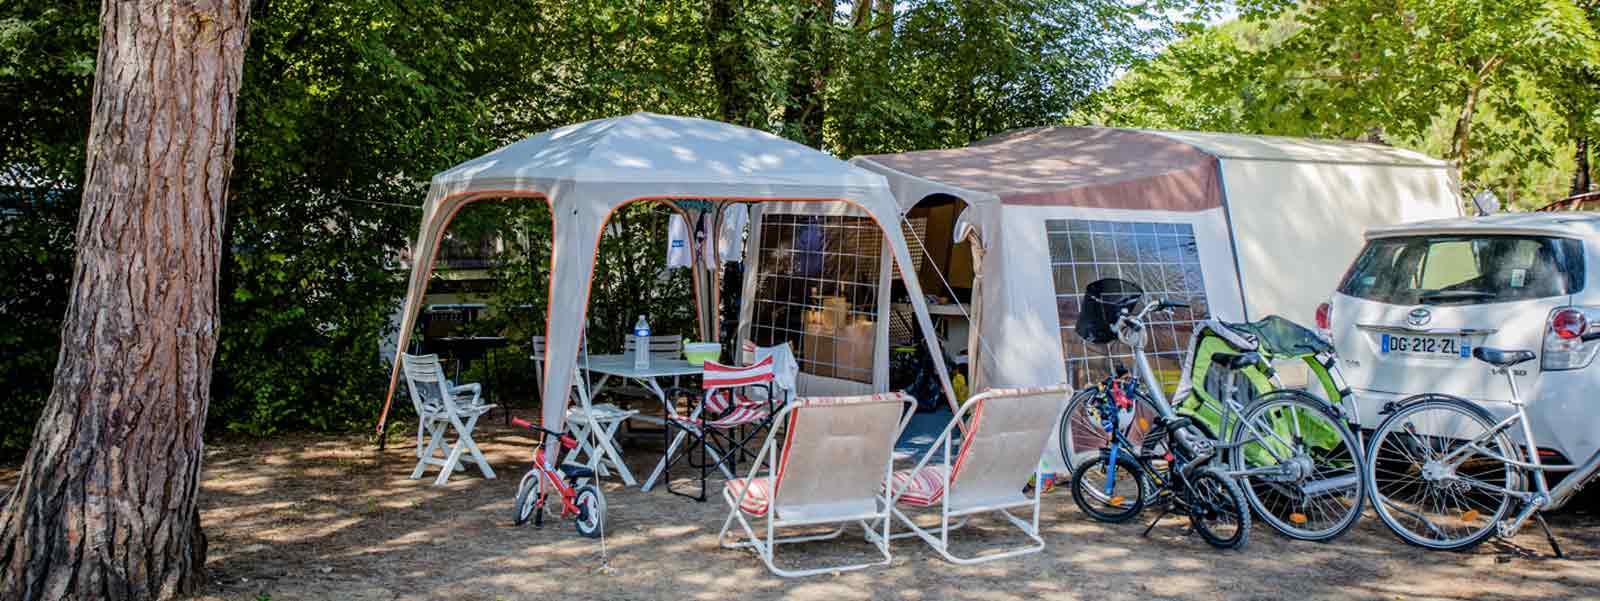 emplacement camping castellane